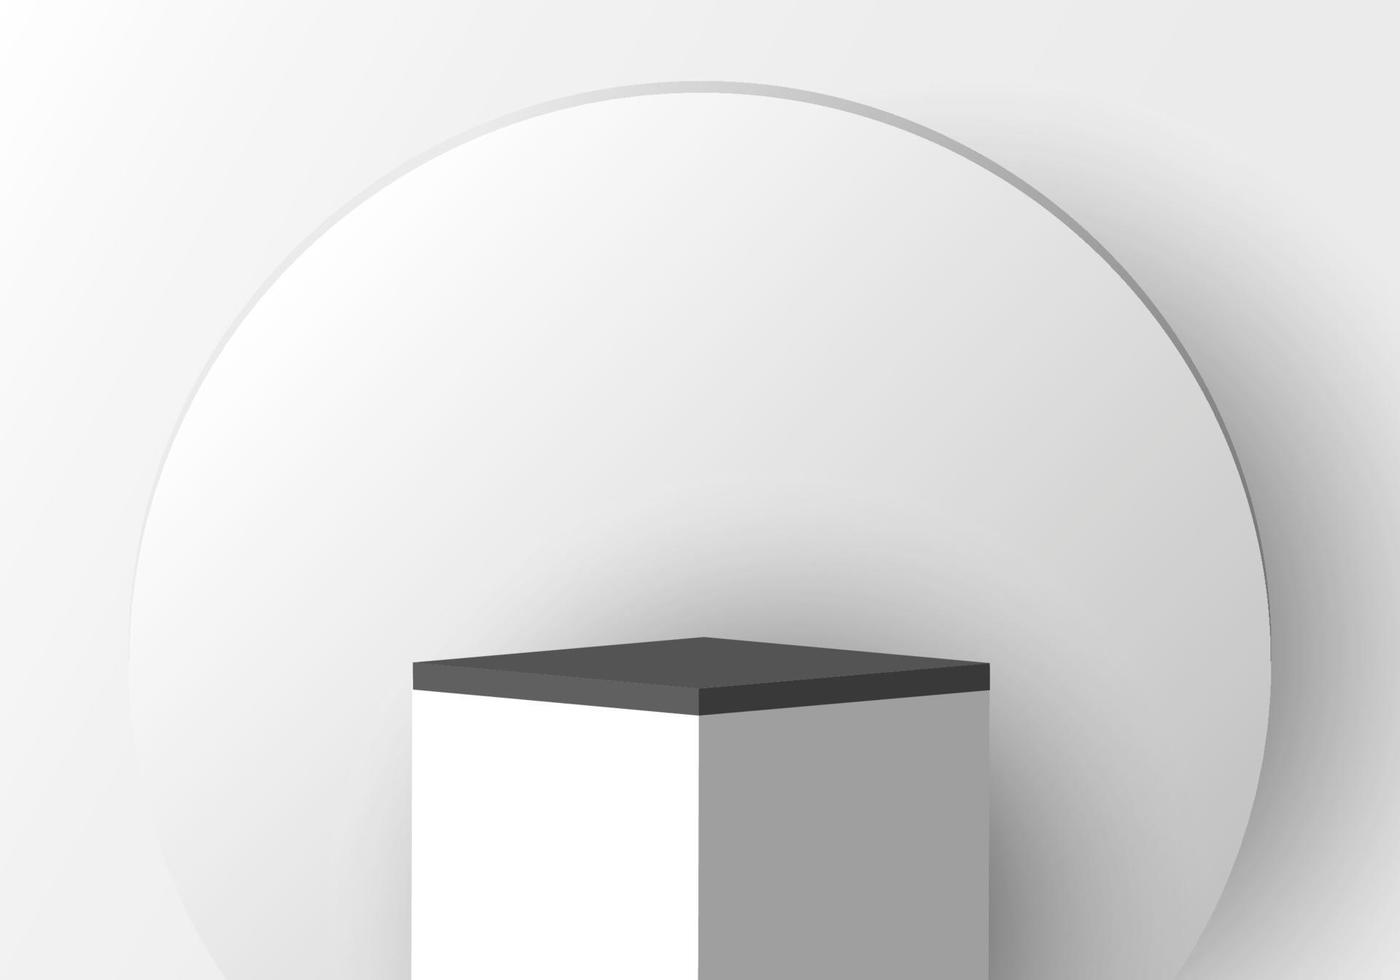 3D realistic white pedestal with black border and circle backdrop for product display vector